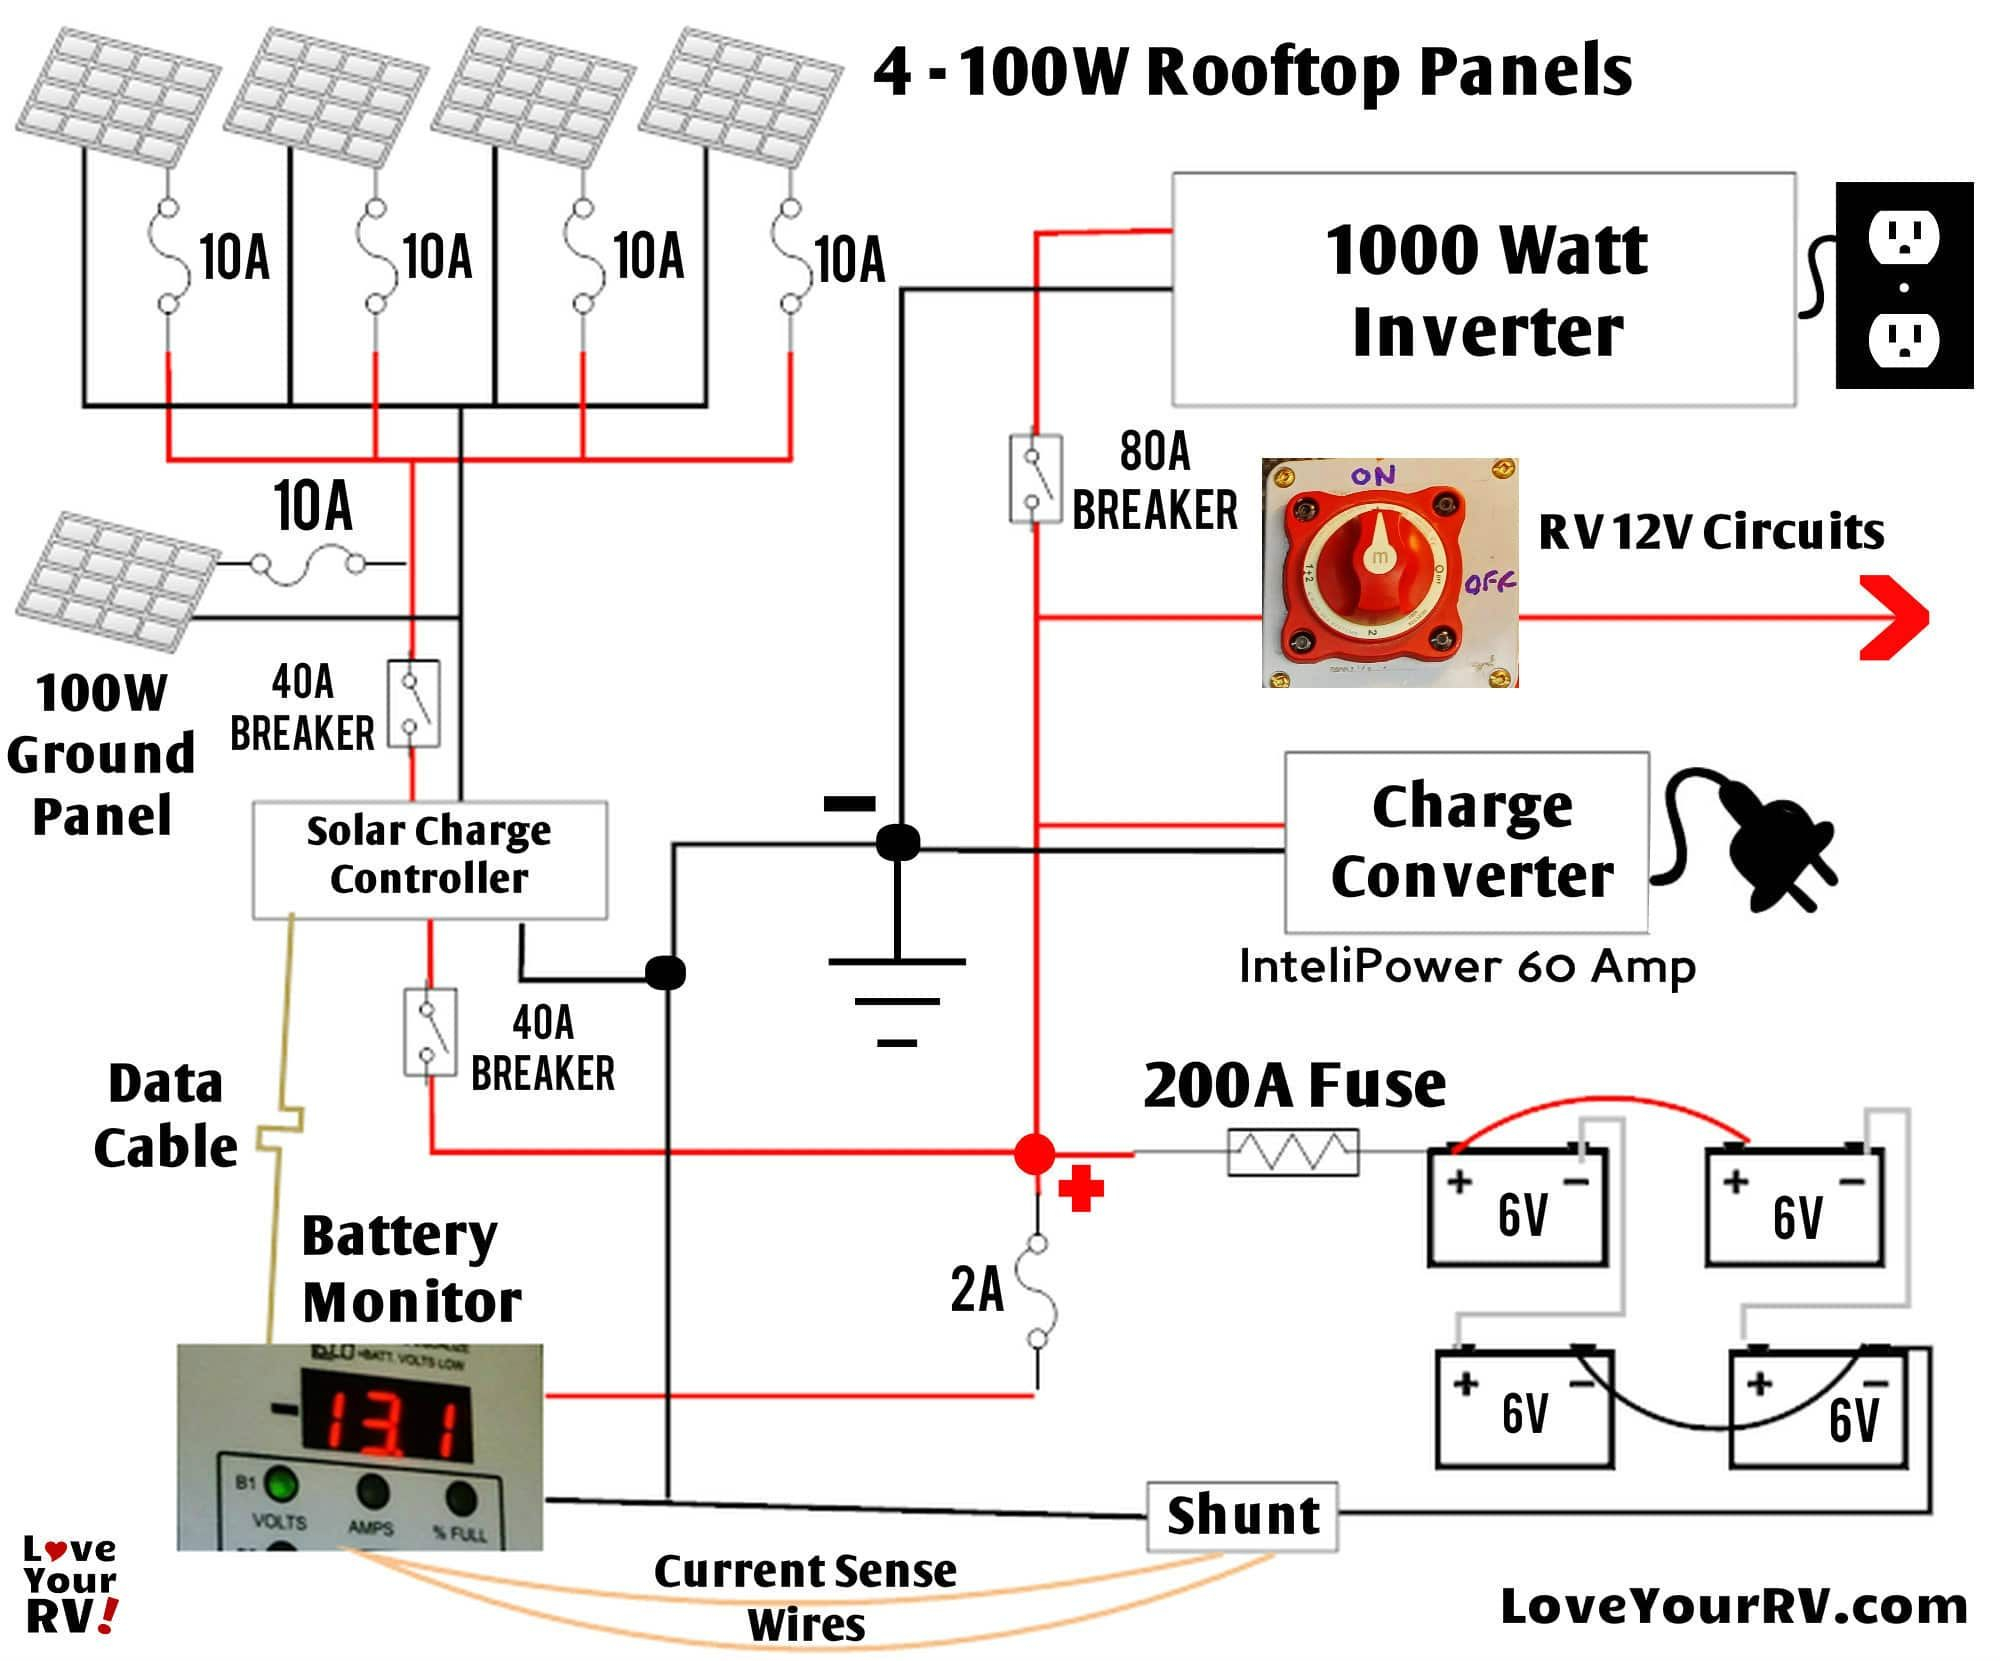 Solar Panels Wiring Diagram Installation - I Have Our Off Grid Rv Power  System Plete so